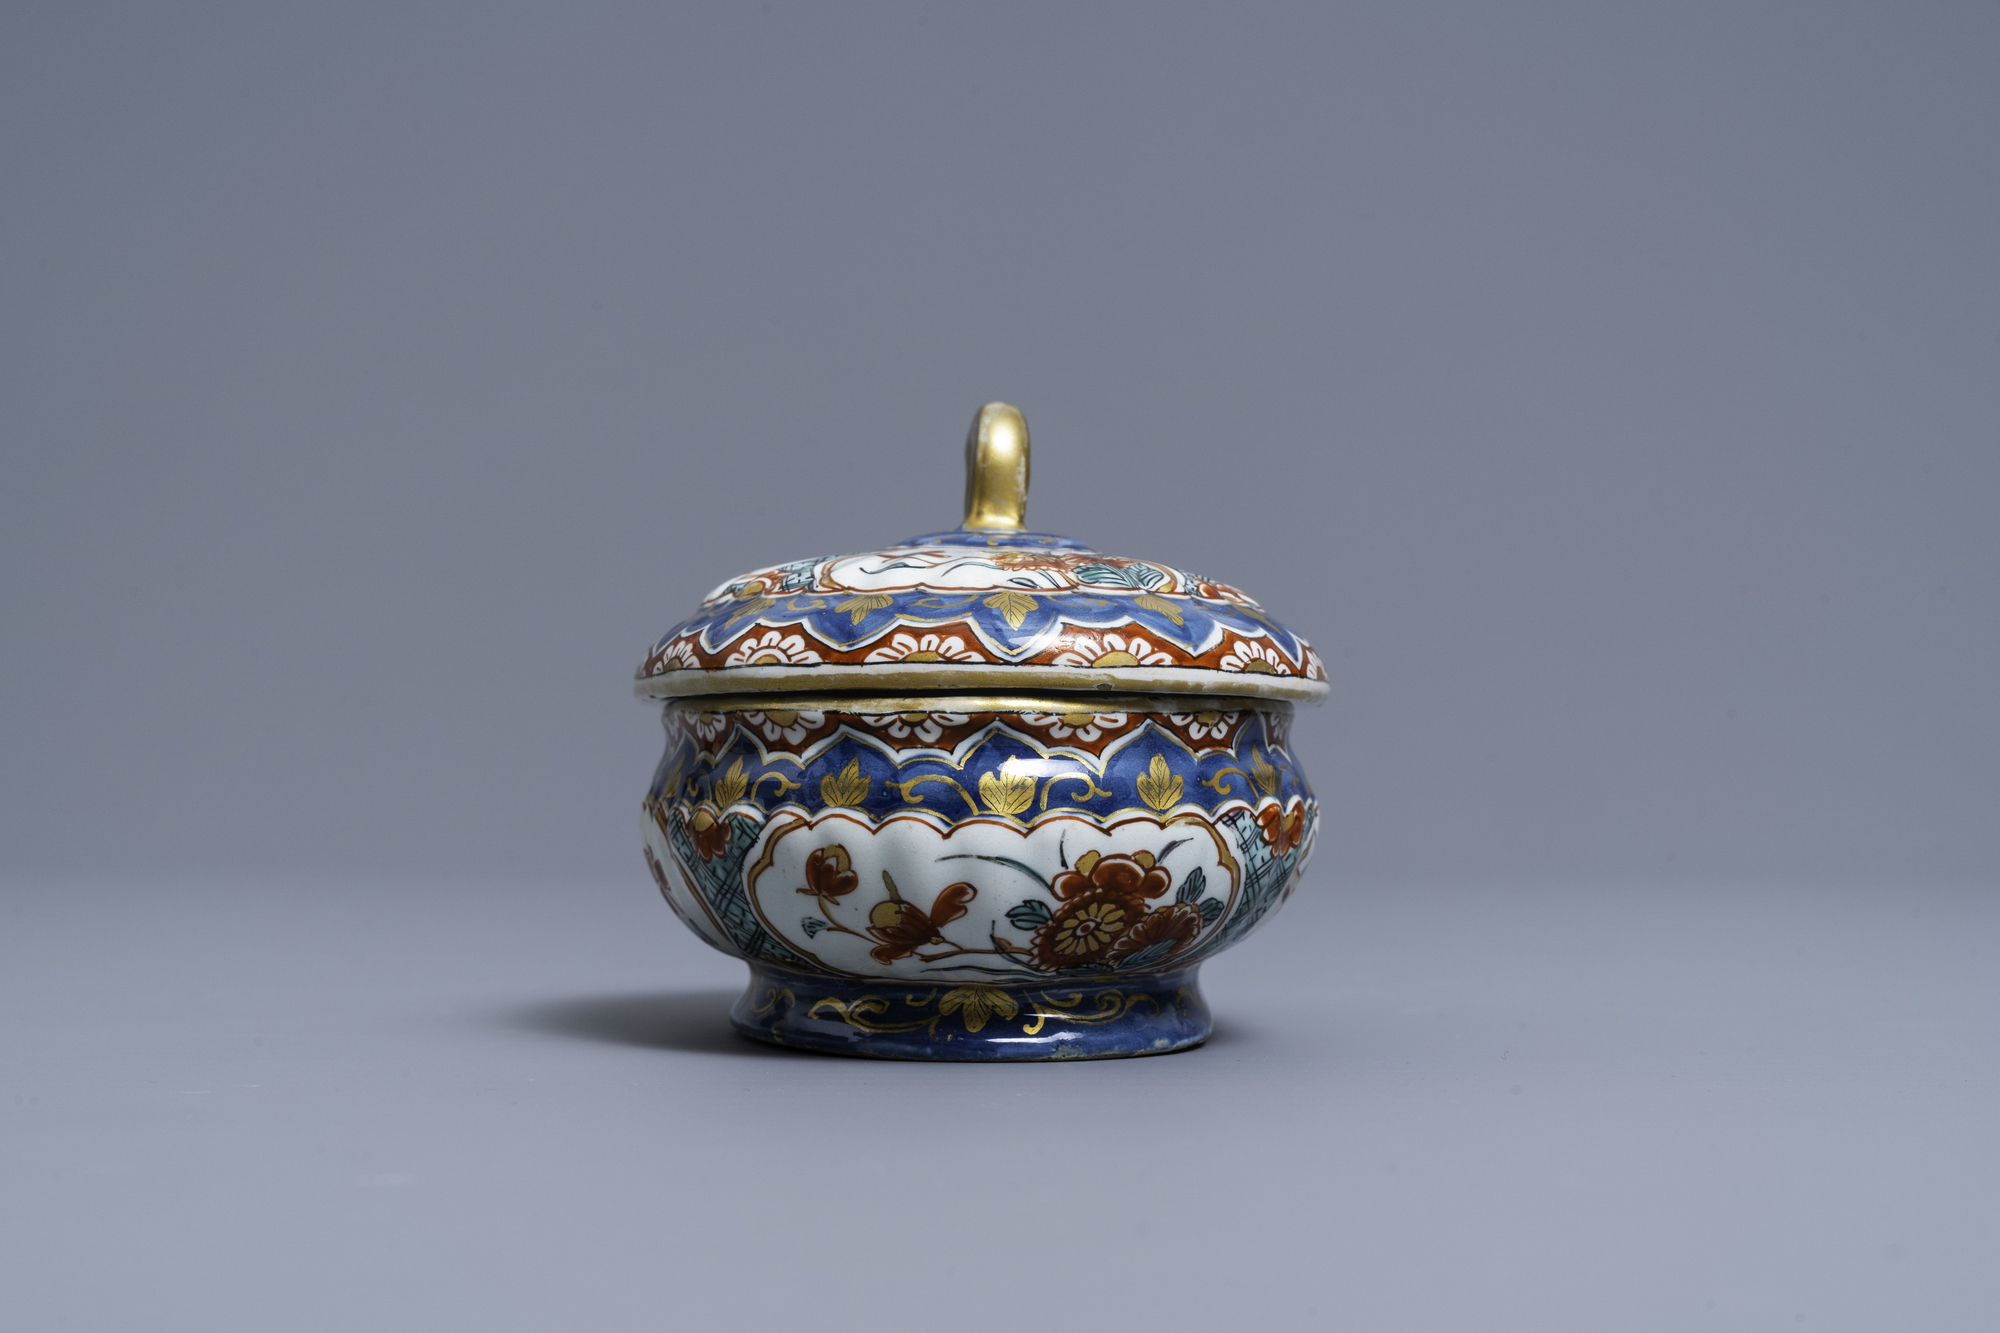 A polychrome and gilded Dutch Delft spice box and cover, early 18th C. - Image 3 of 7